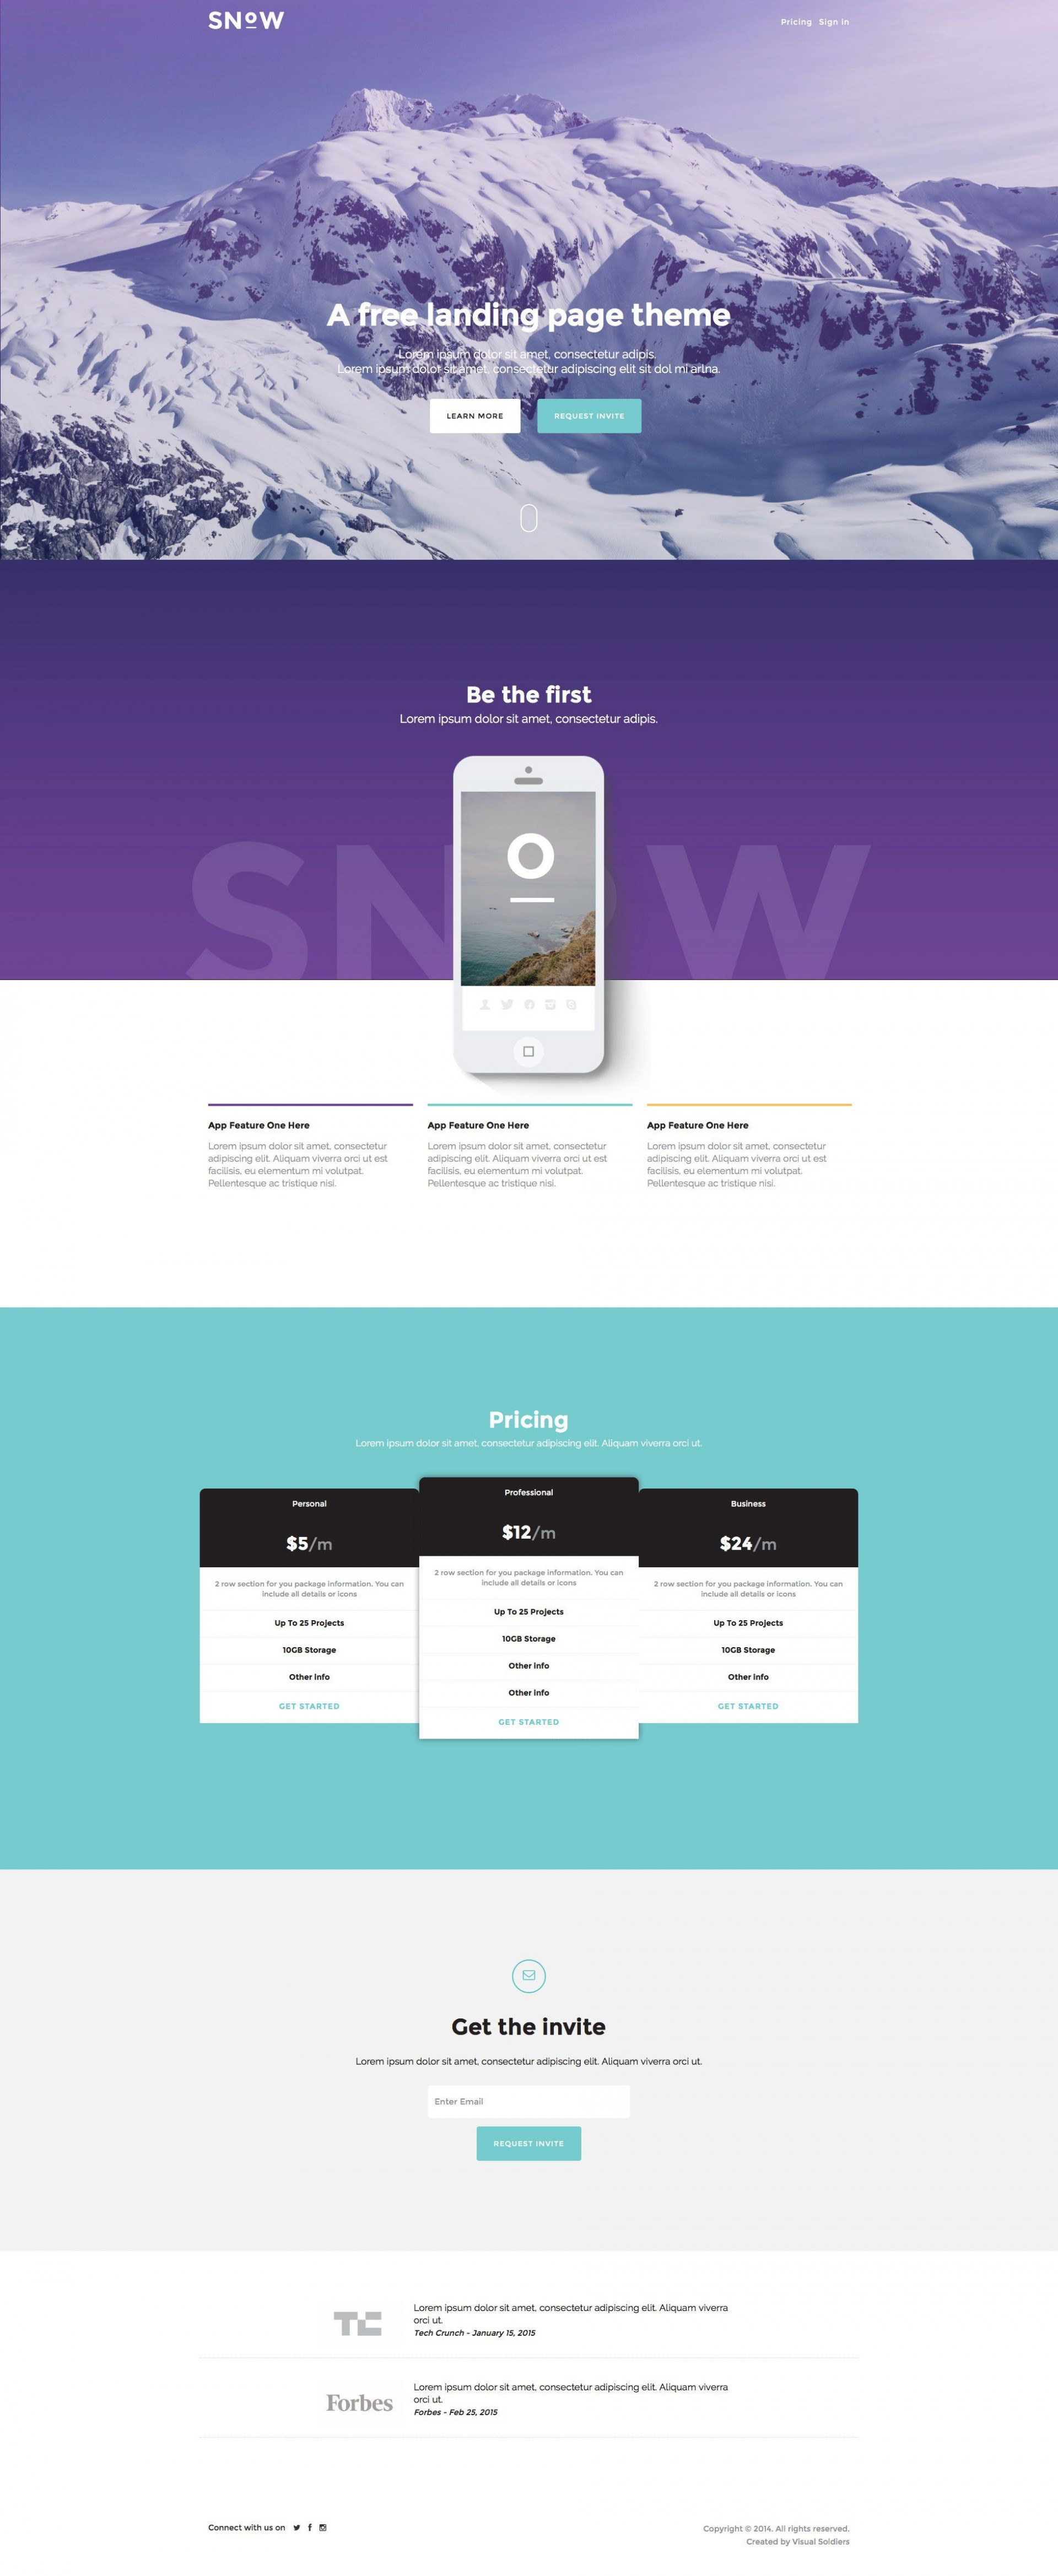 008 Stunning Product Website Template Html Free Download Image  With Cs1920